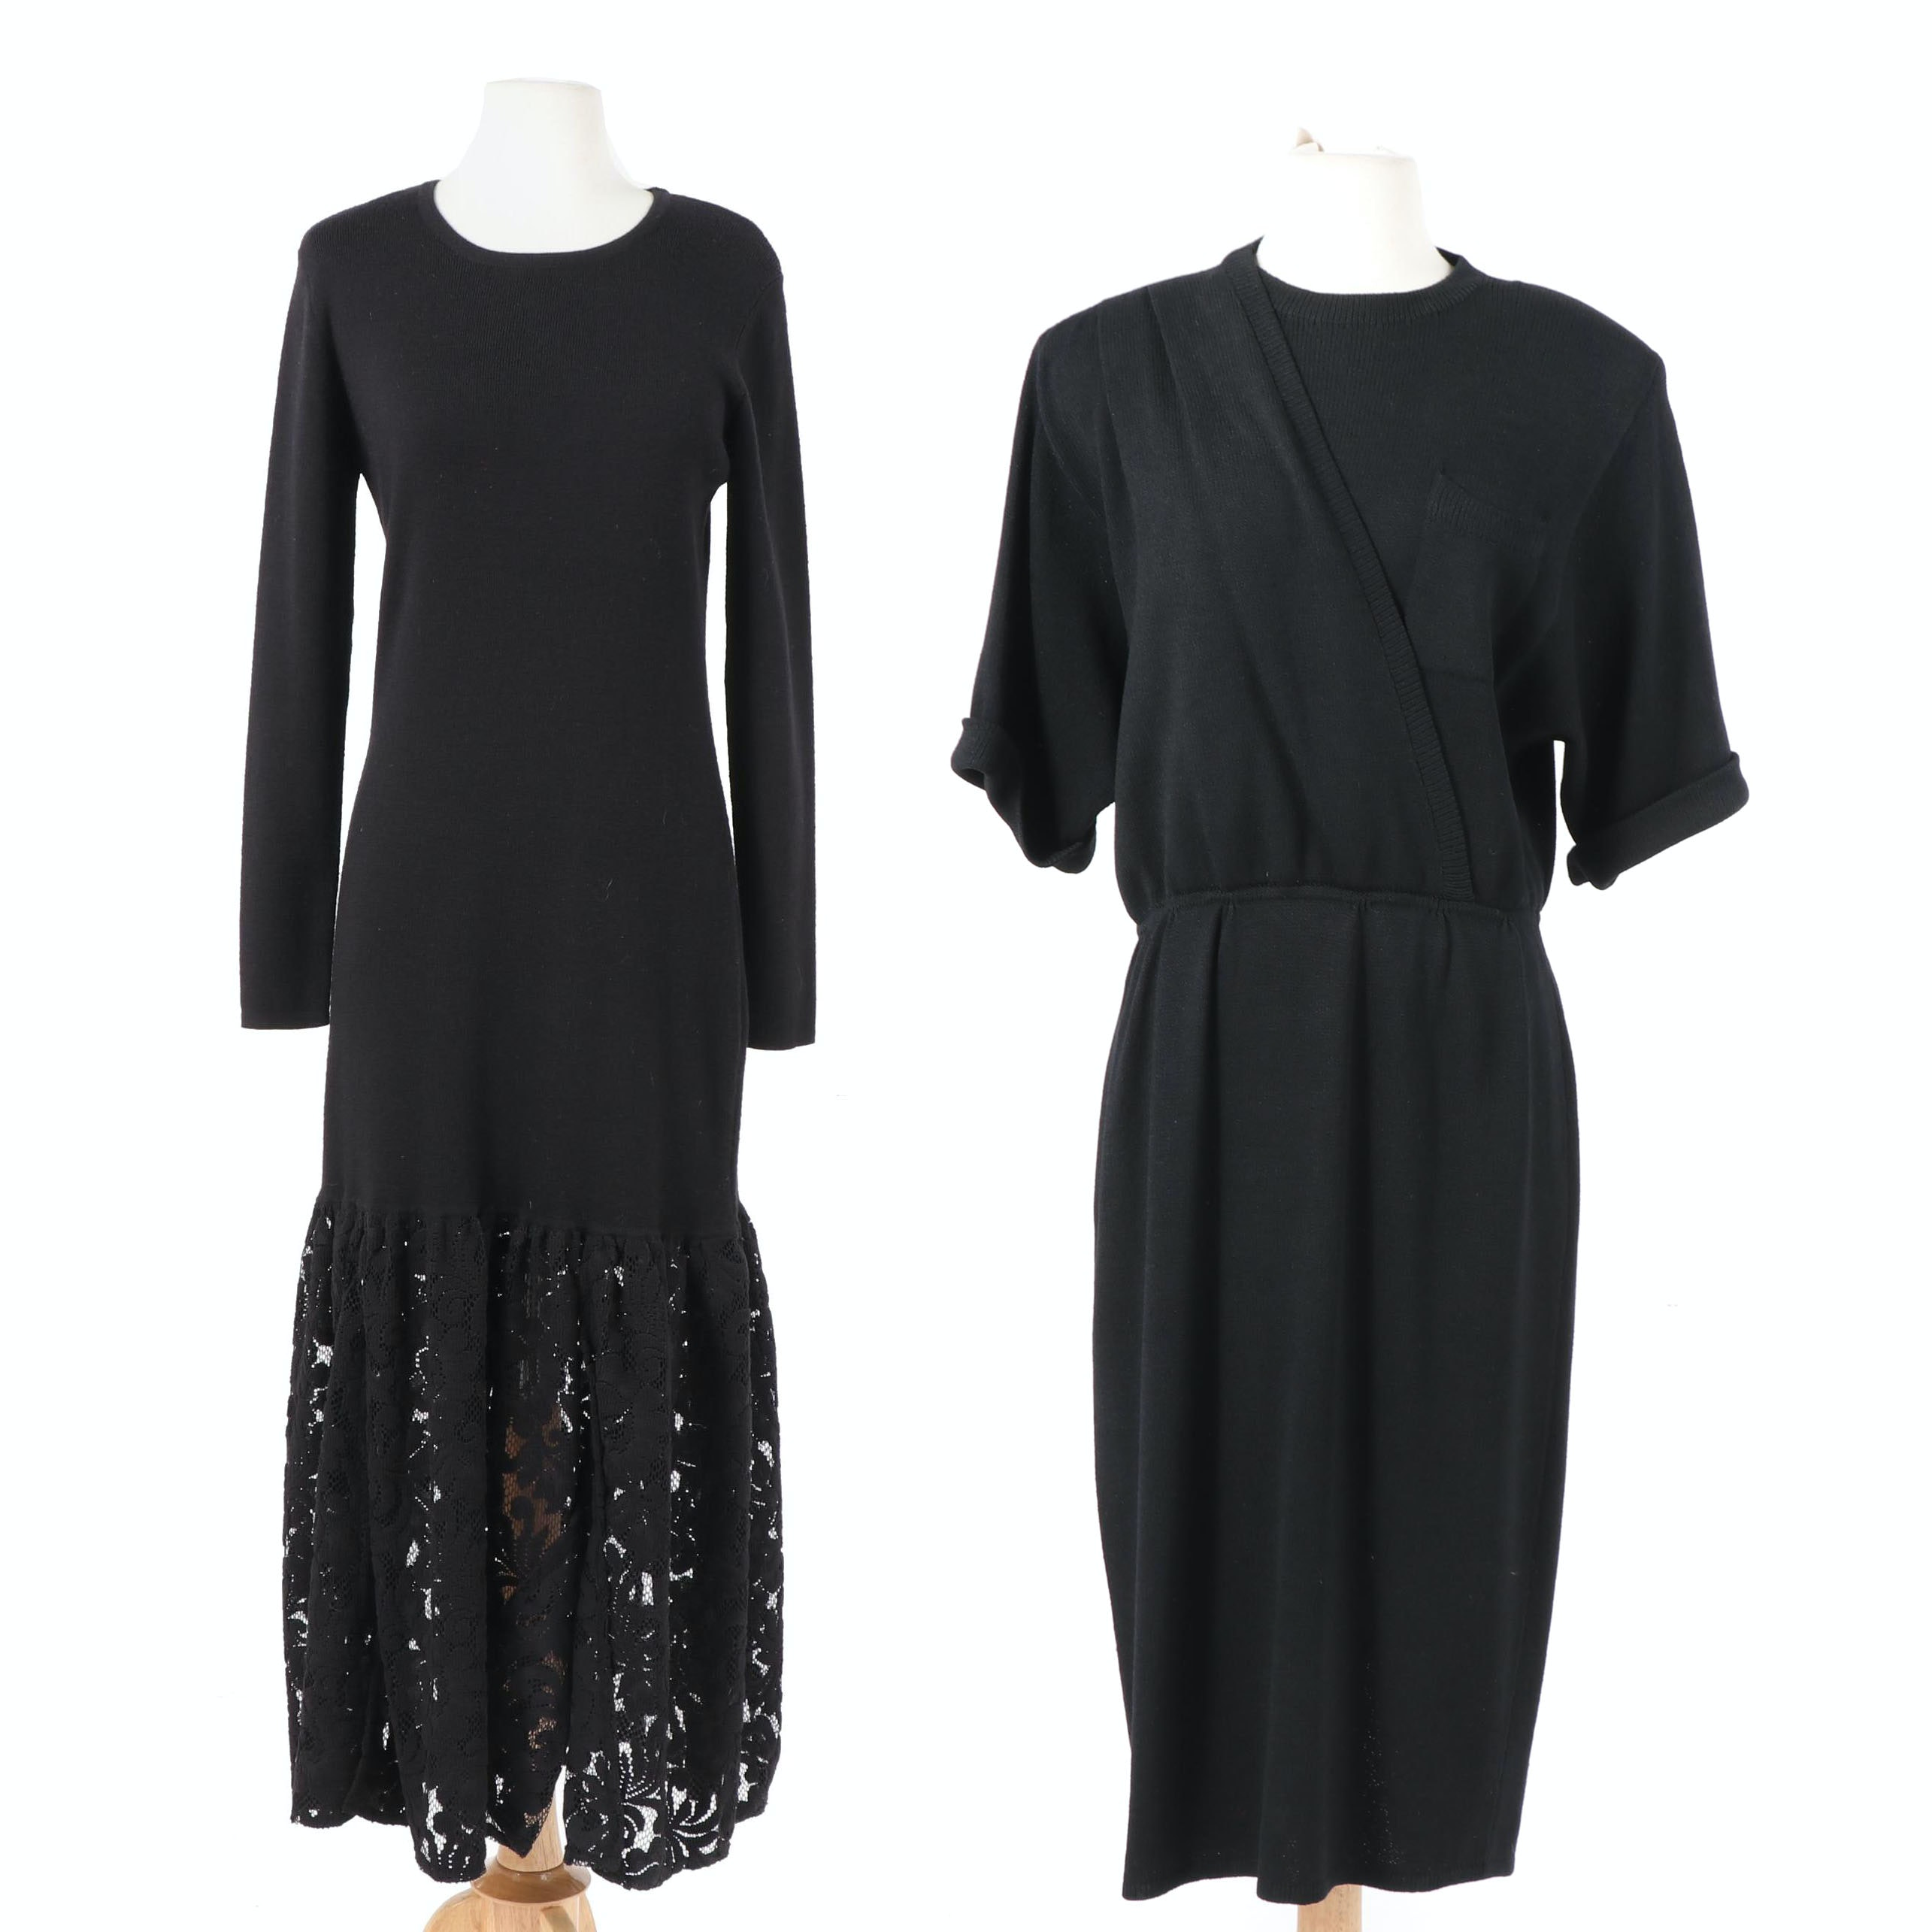 Adrienne Vittadini Black Wool Blend Lace Dress and 1970s St. John Wrap Dress